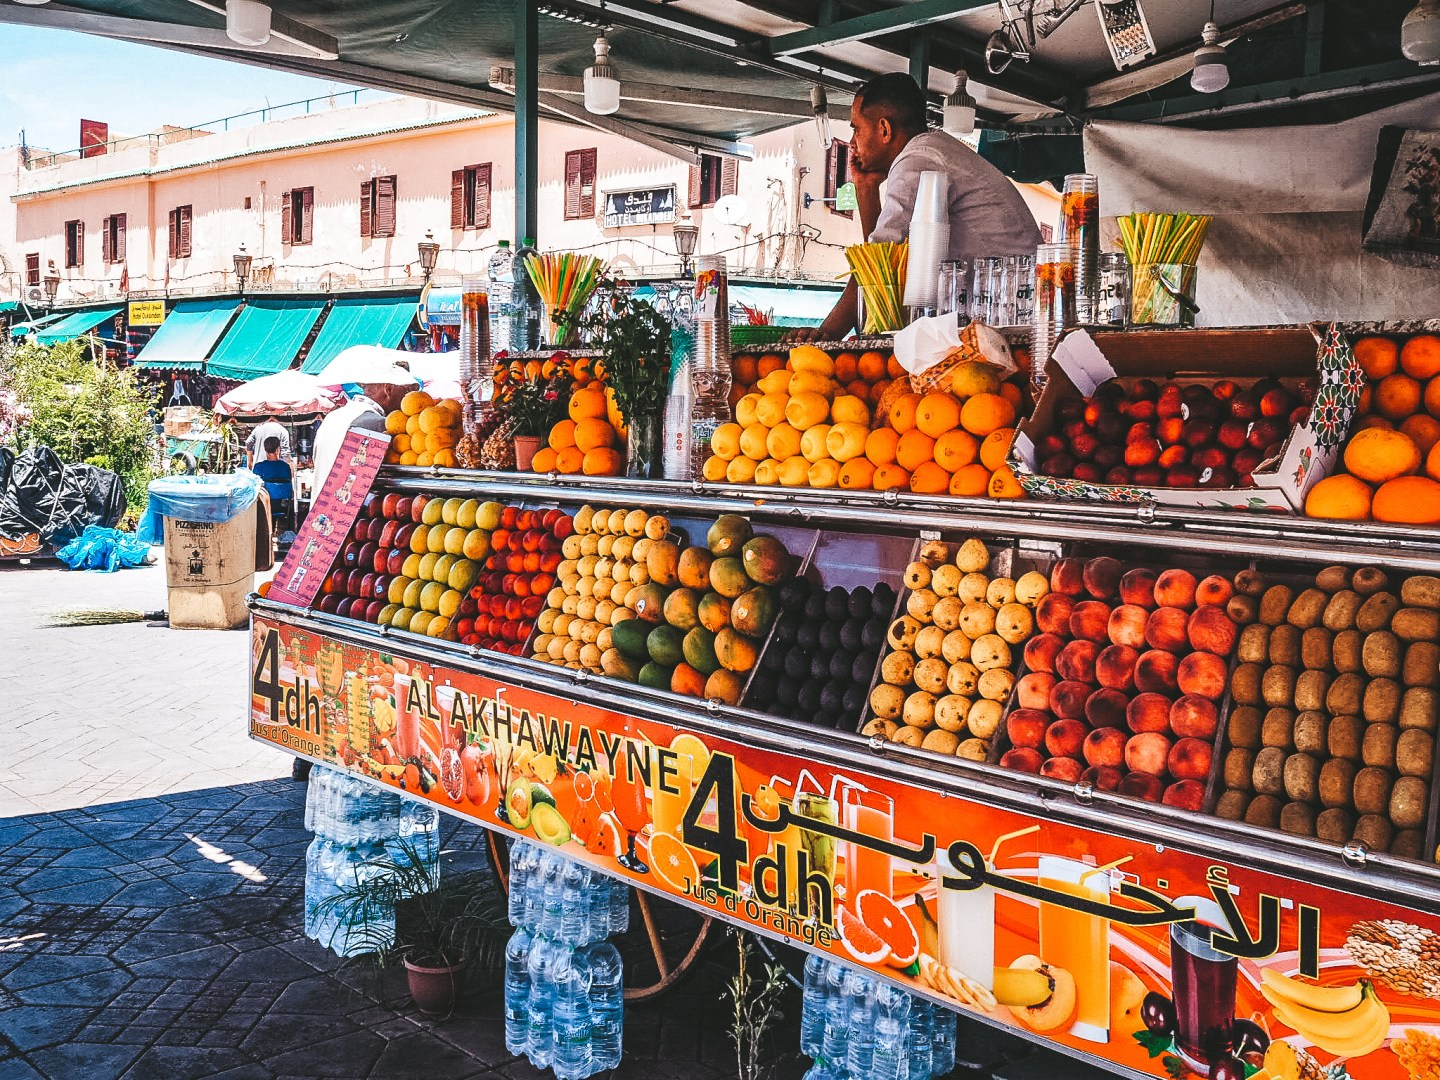 A Fruit Stand in Marrakesh